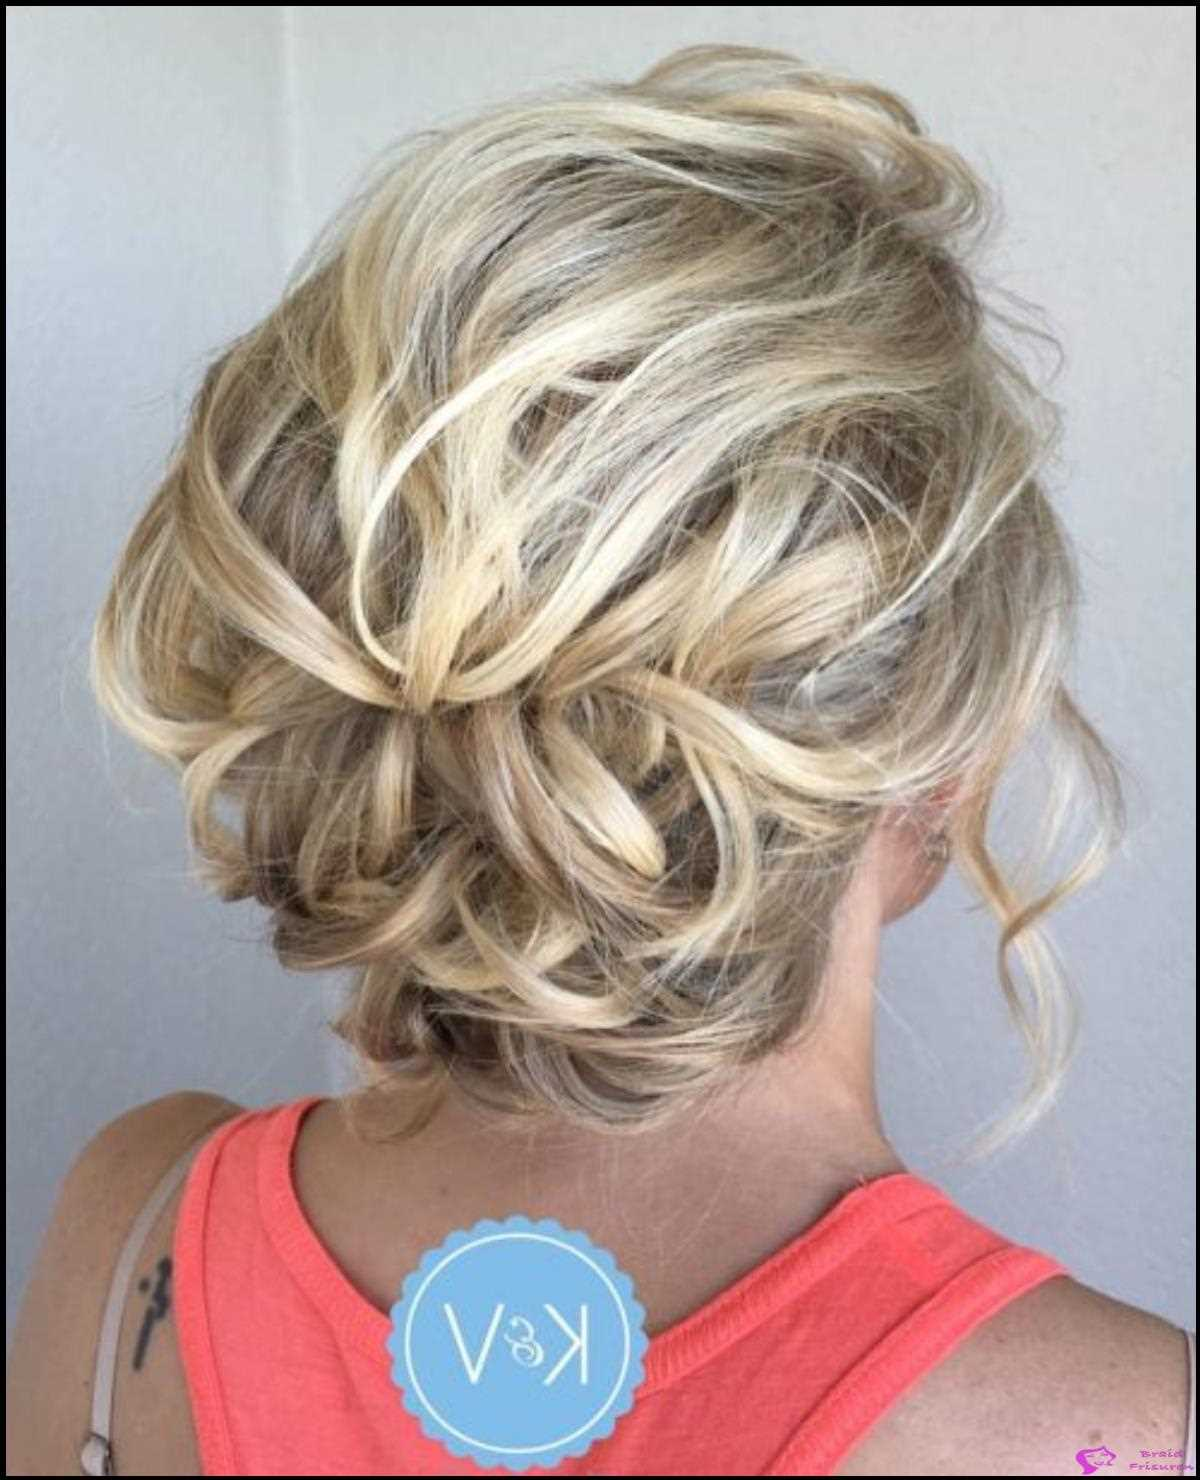 2: Lacy Loose Messy Curls Updo